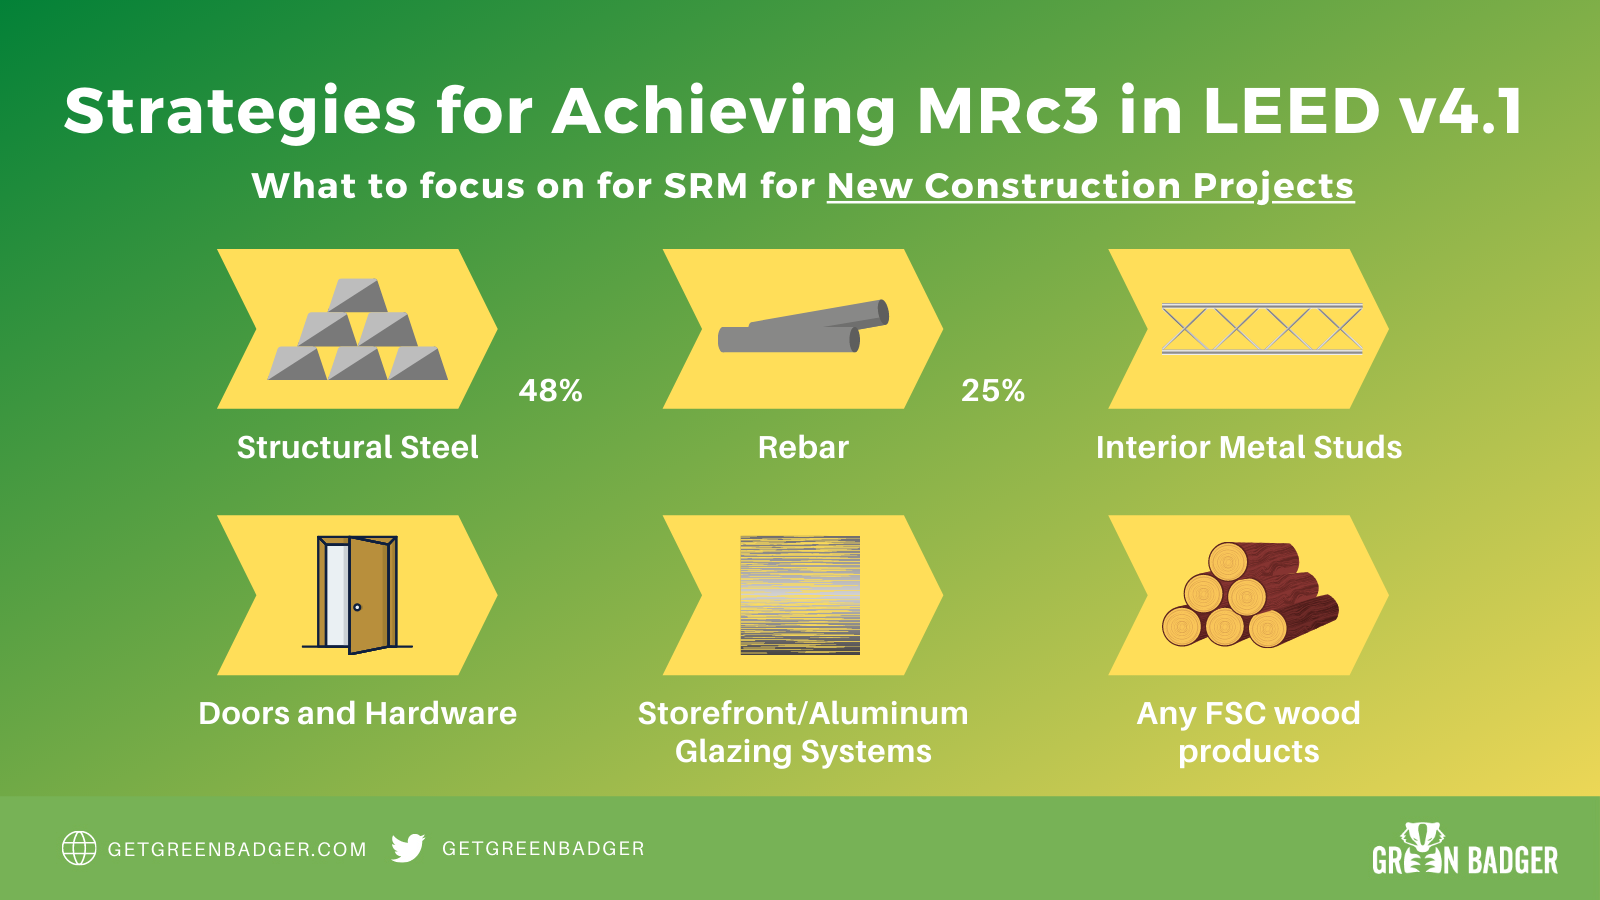 MRc3 Sourcing of Raw Materials in LEED v4.1